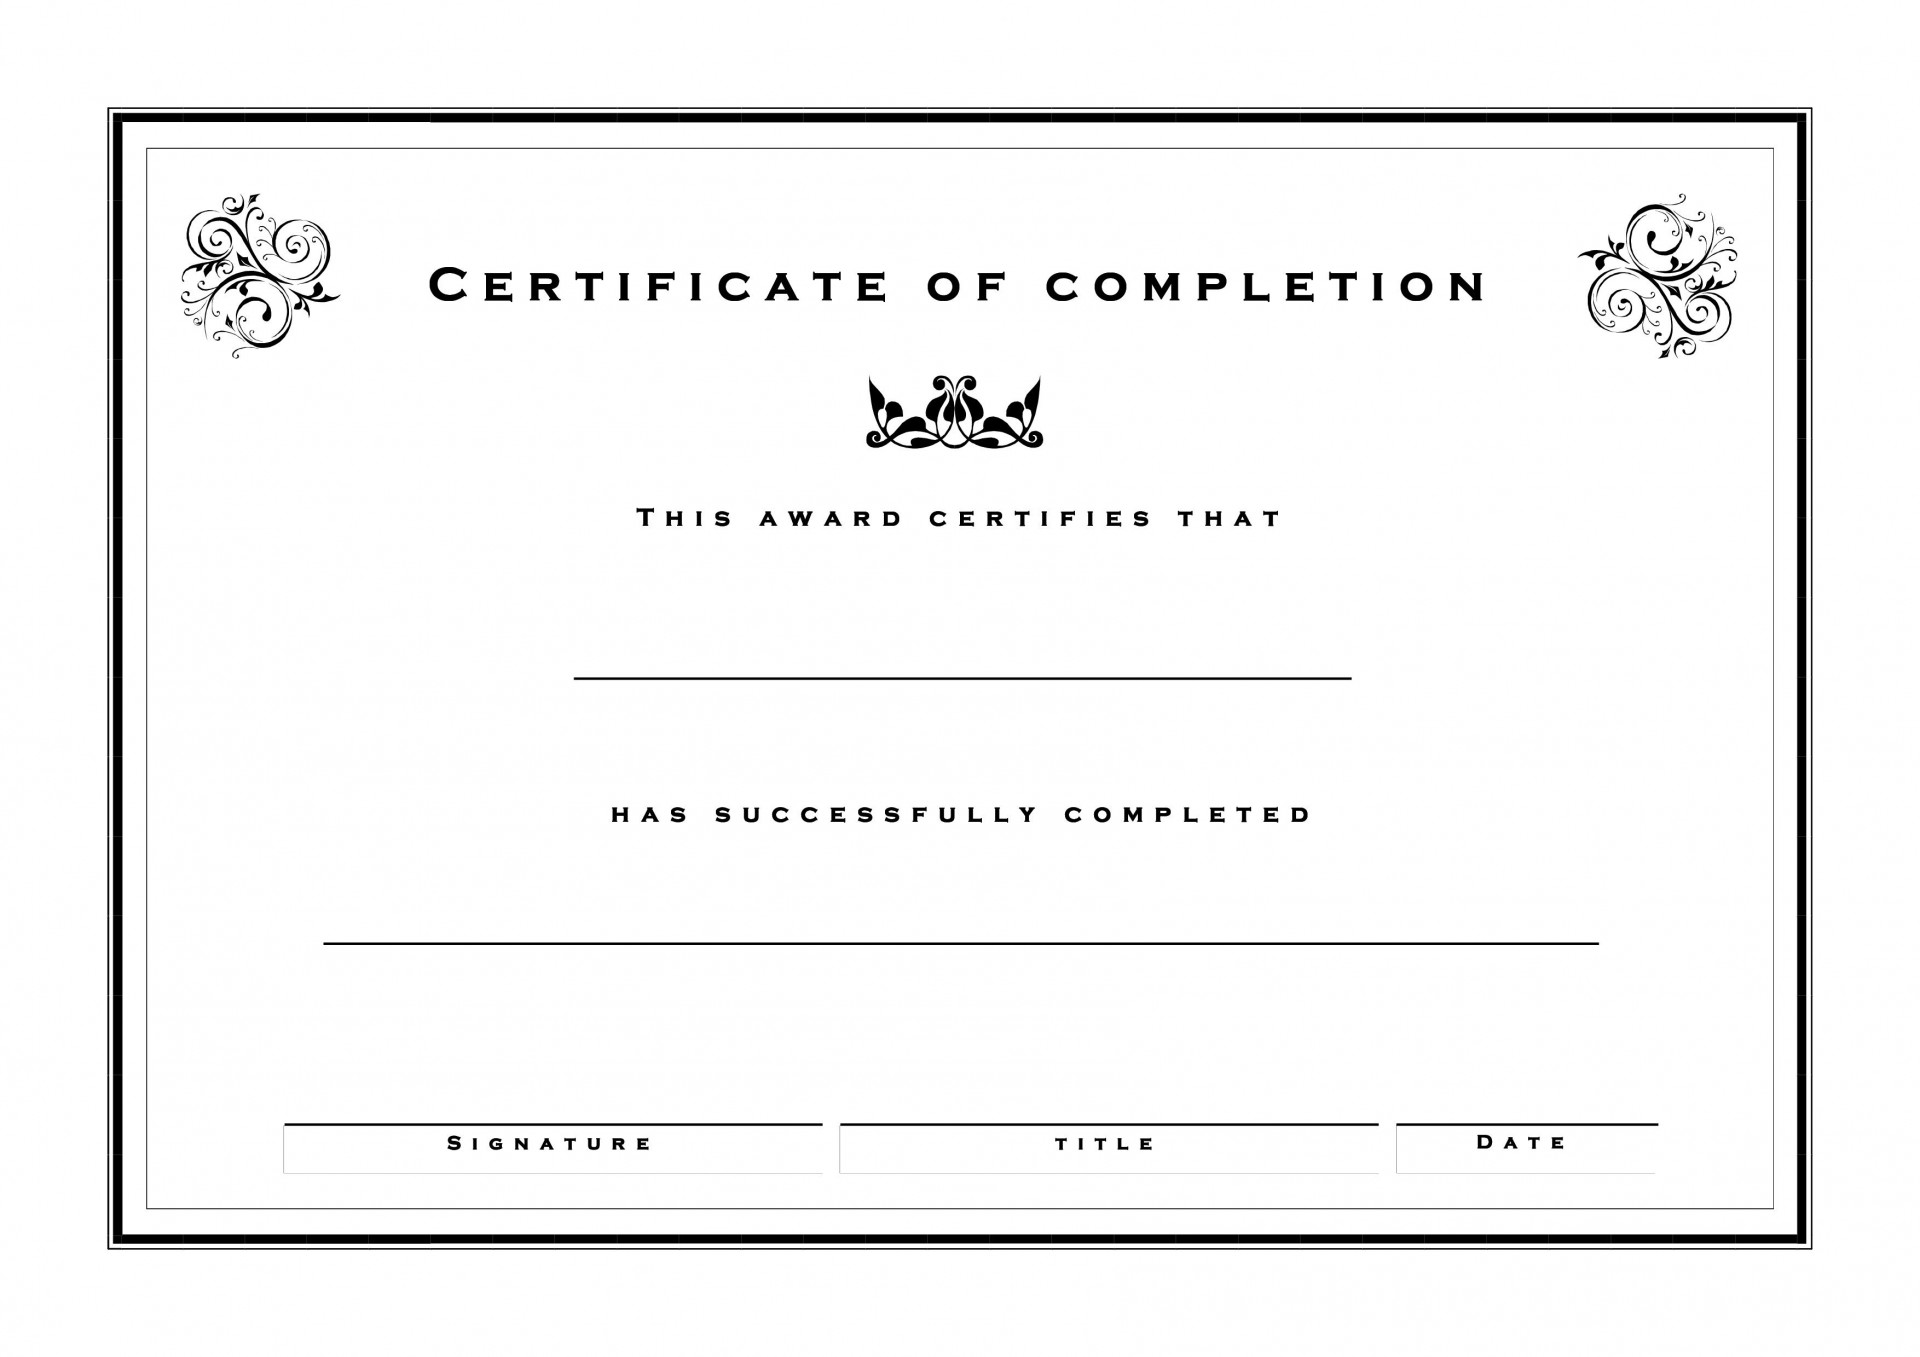 000 Archaicawful Free Certificate Of Completion Template Inspiration  Blank Printable Download Word Pdf1920